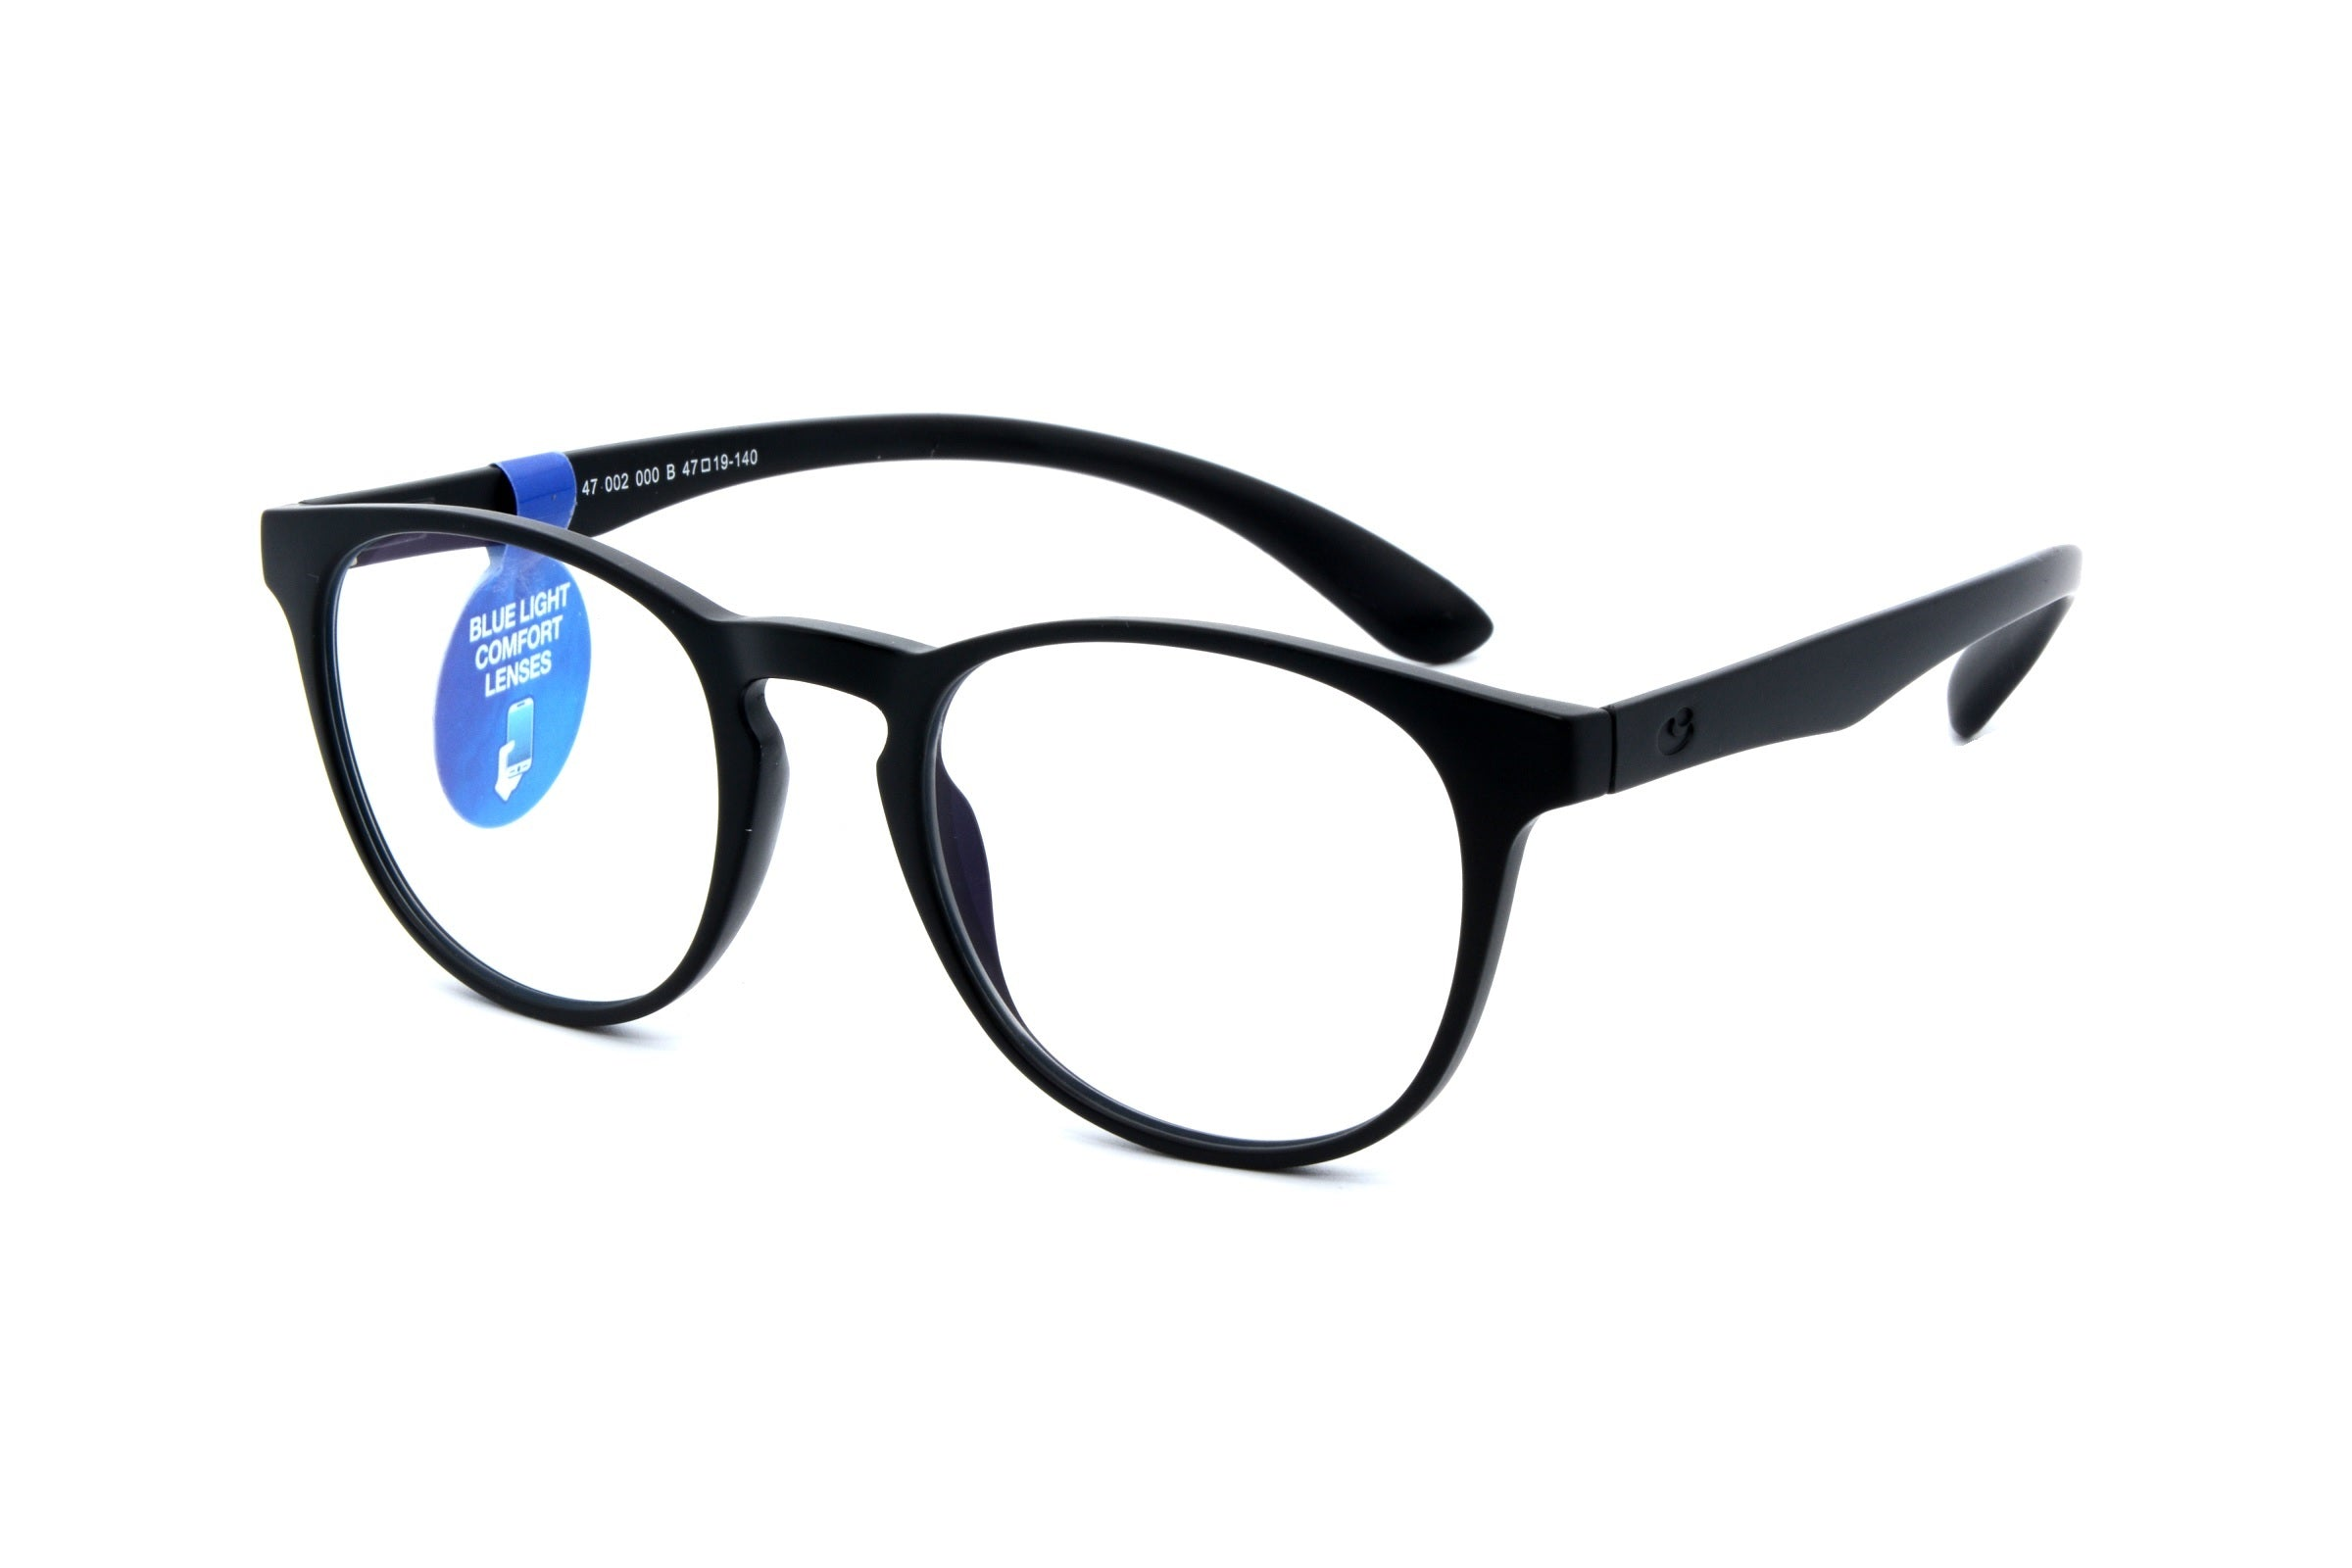 Centrostyle eyewear Blue Light F026947002000B - Optics Trading